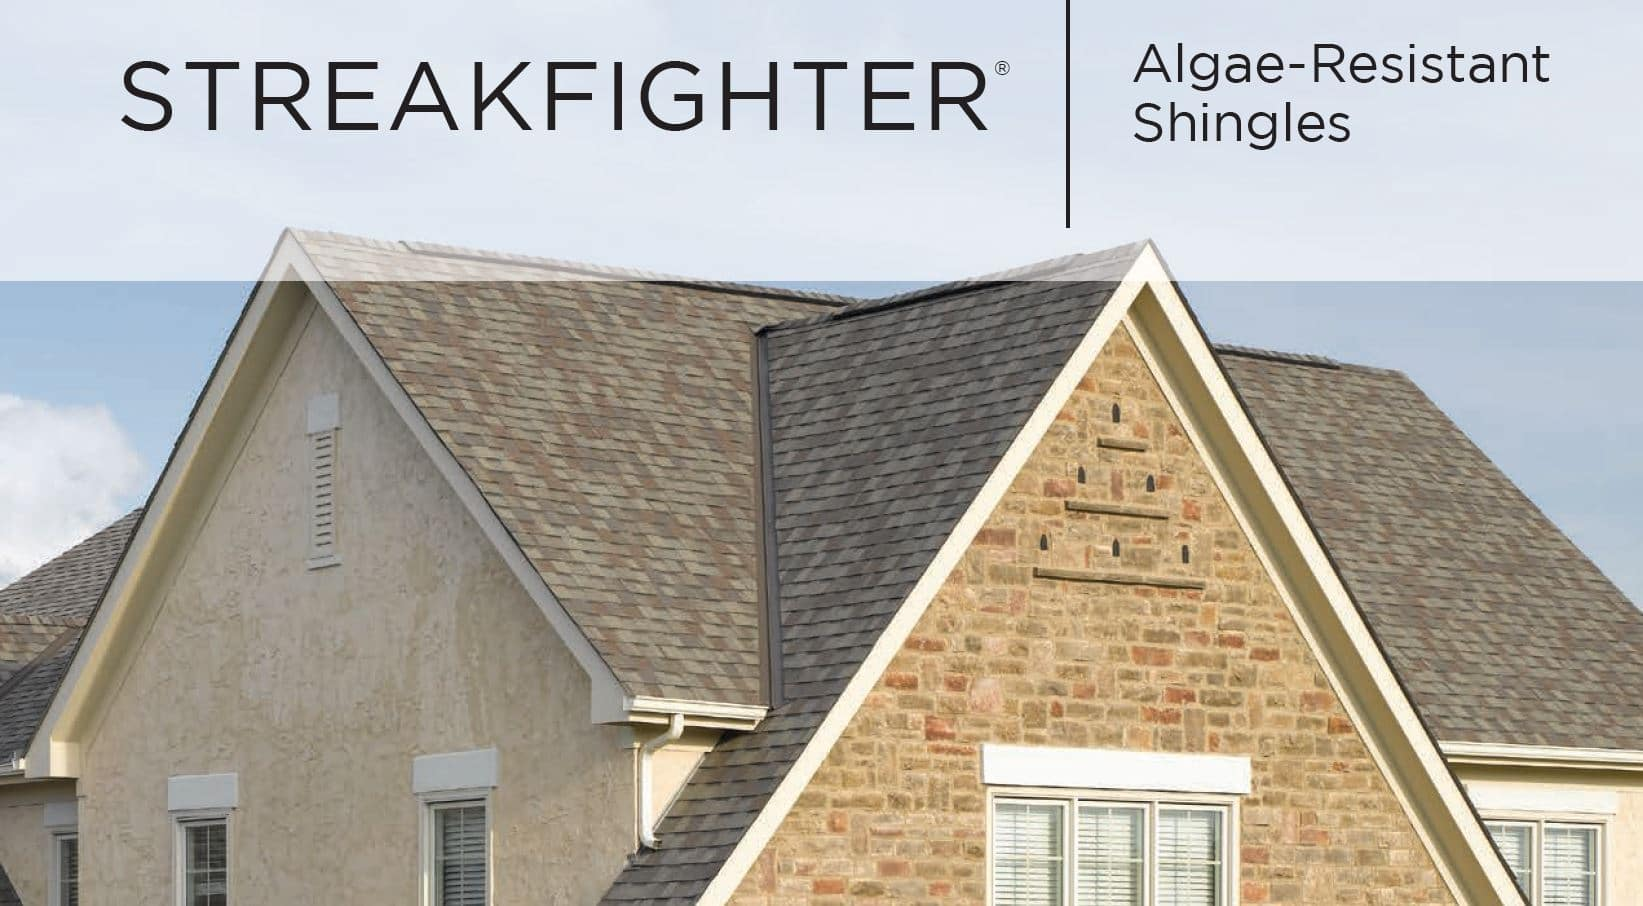 Design Tech Homes Uses CERTAINTEED'S STREAKFIGHTER® Algae-Resistant Technology 1